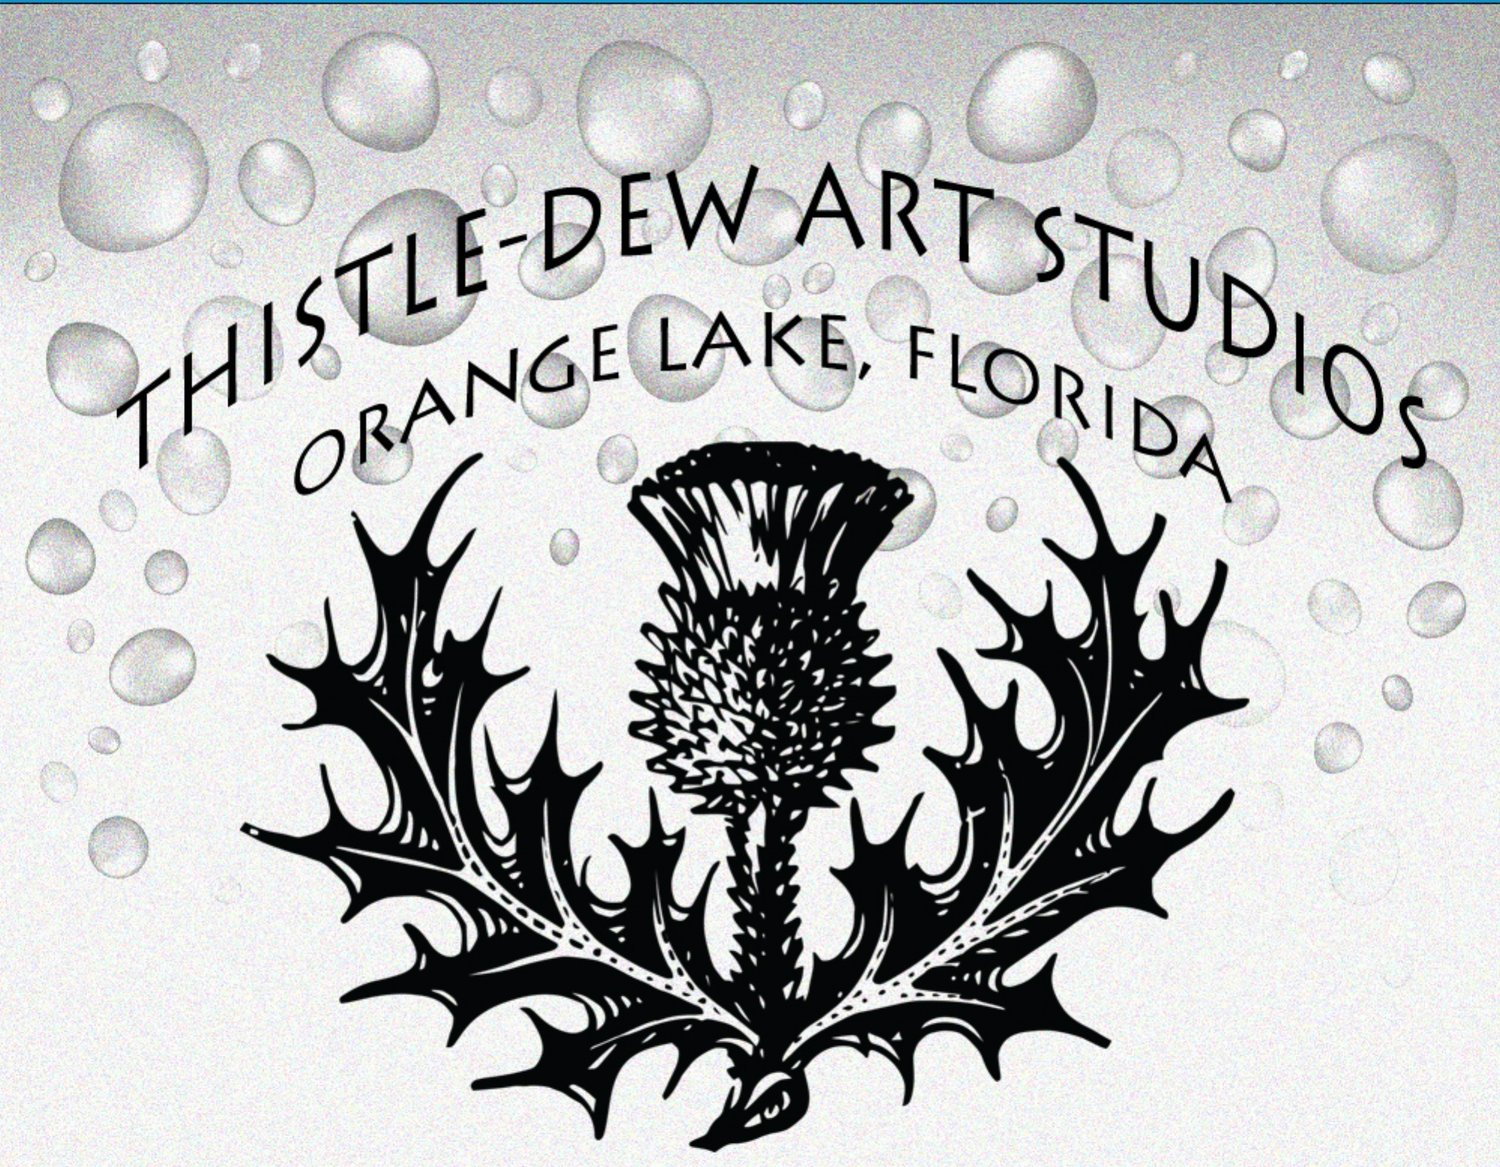 Thistle Dew Art Studios